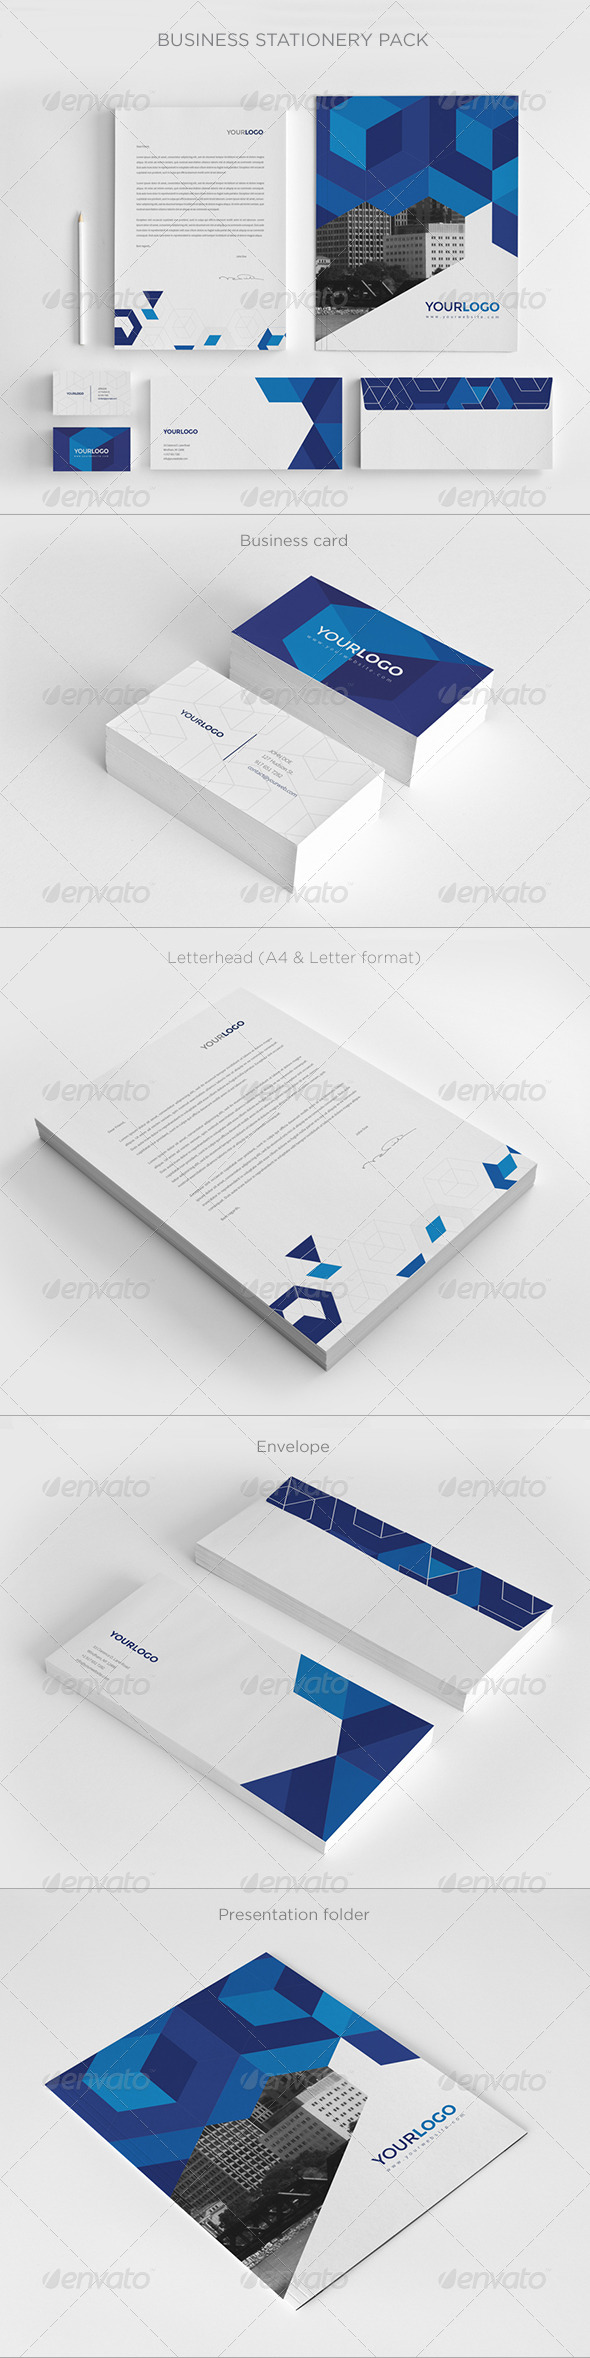 GraphicRiver Business Stationery Pack 7596178